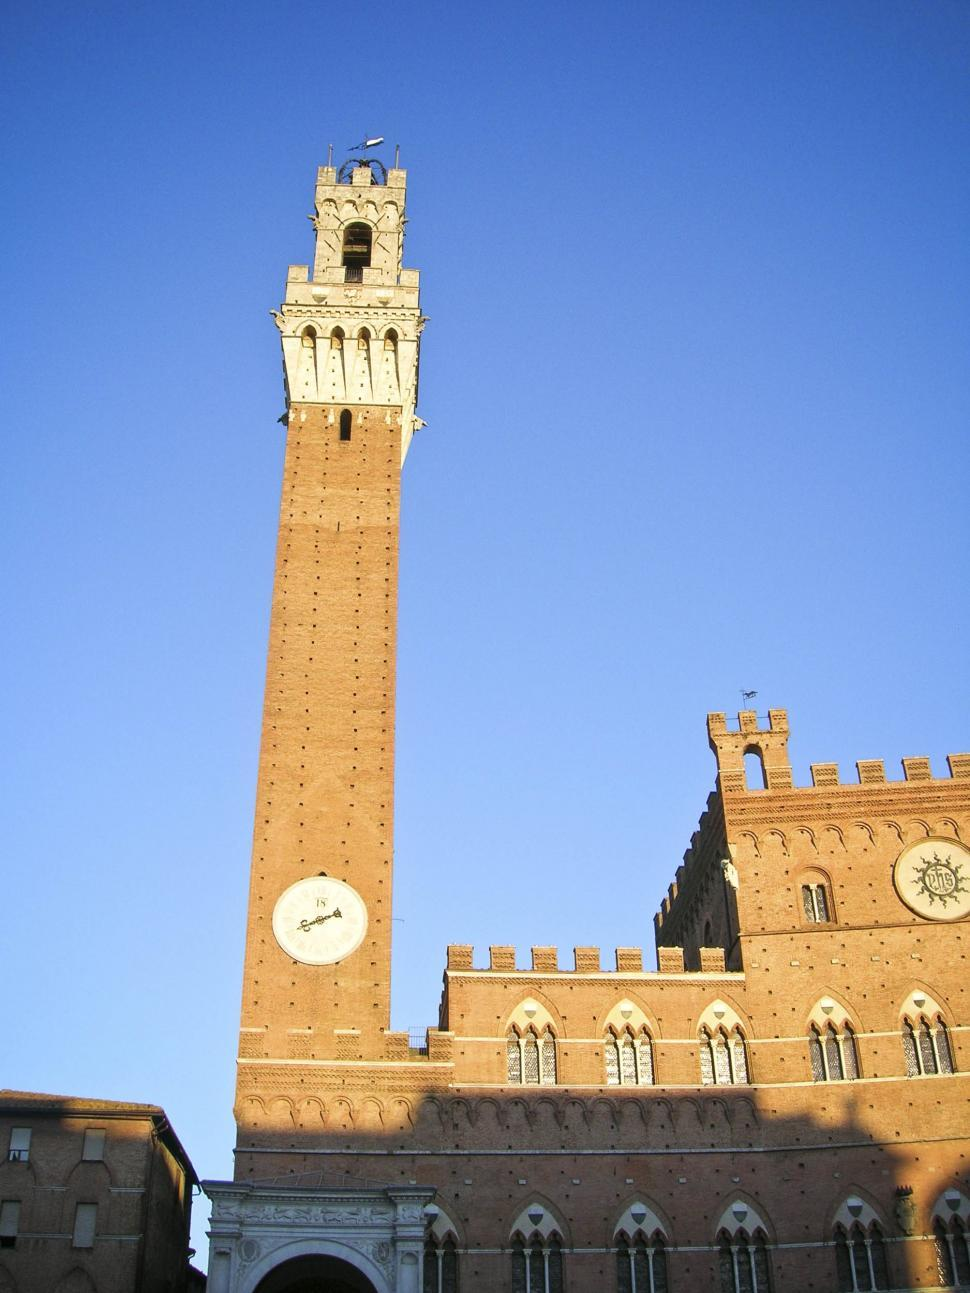 Download Free Stock HD Photo of Clock tower in Siena, Italy Online